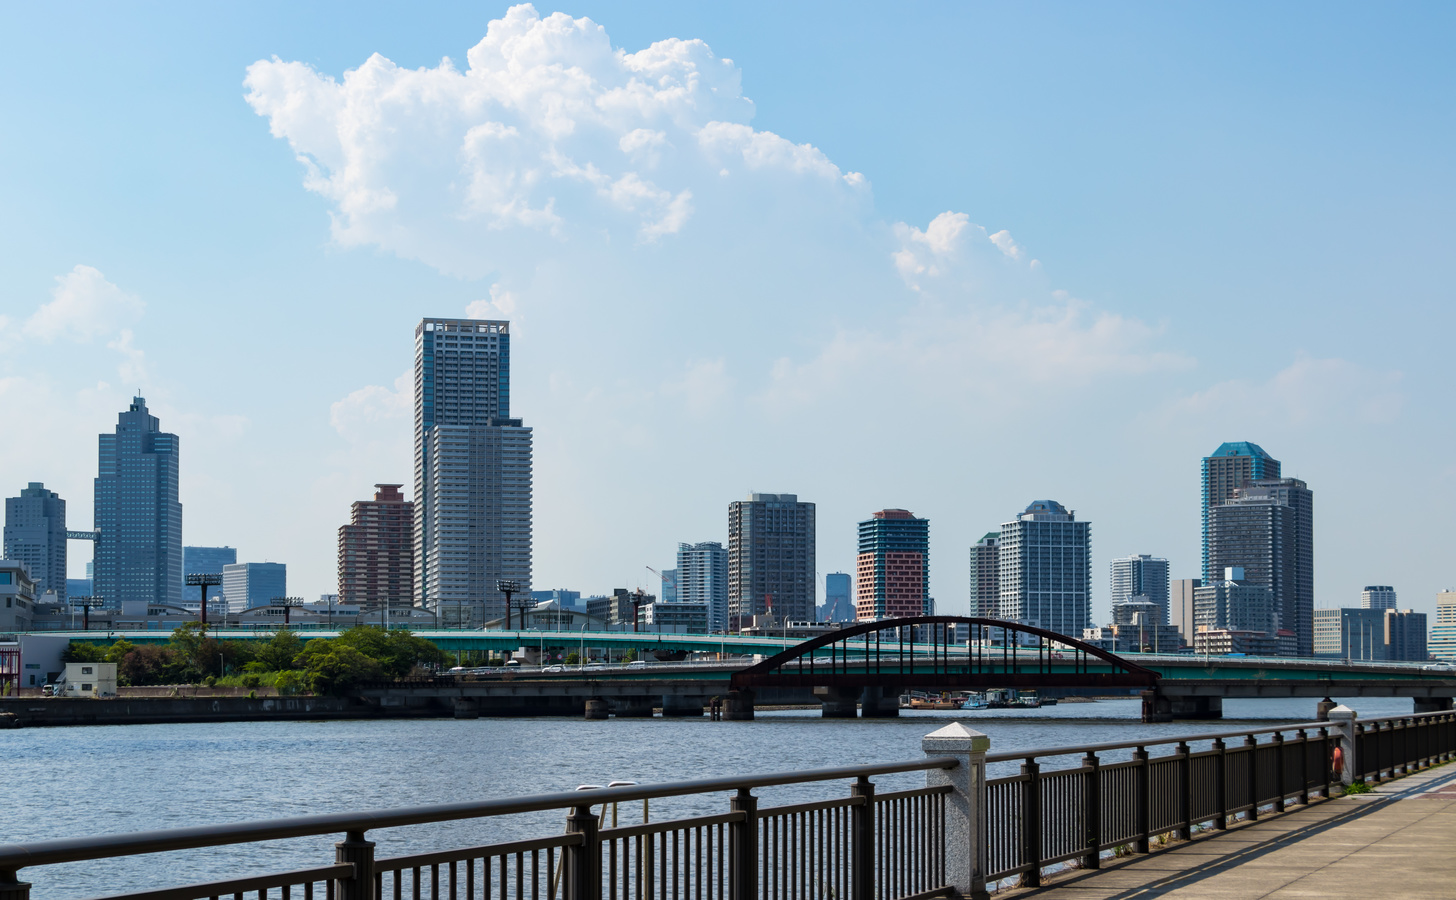 Photographing the scenery around Toyosu canal from the promenade along the river